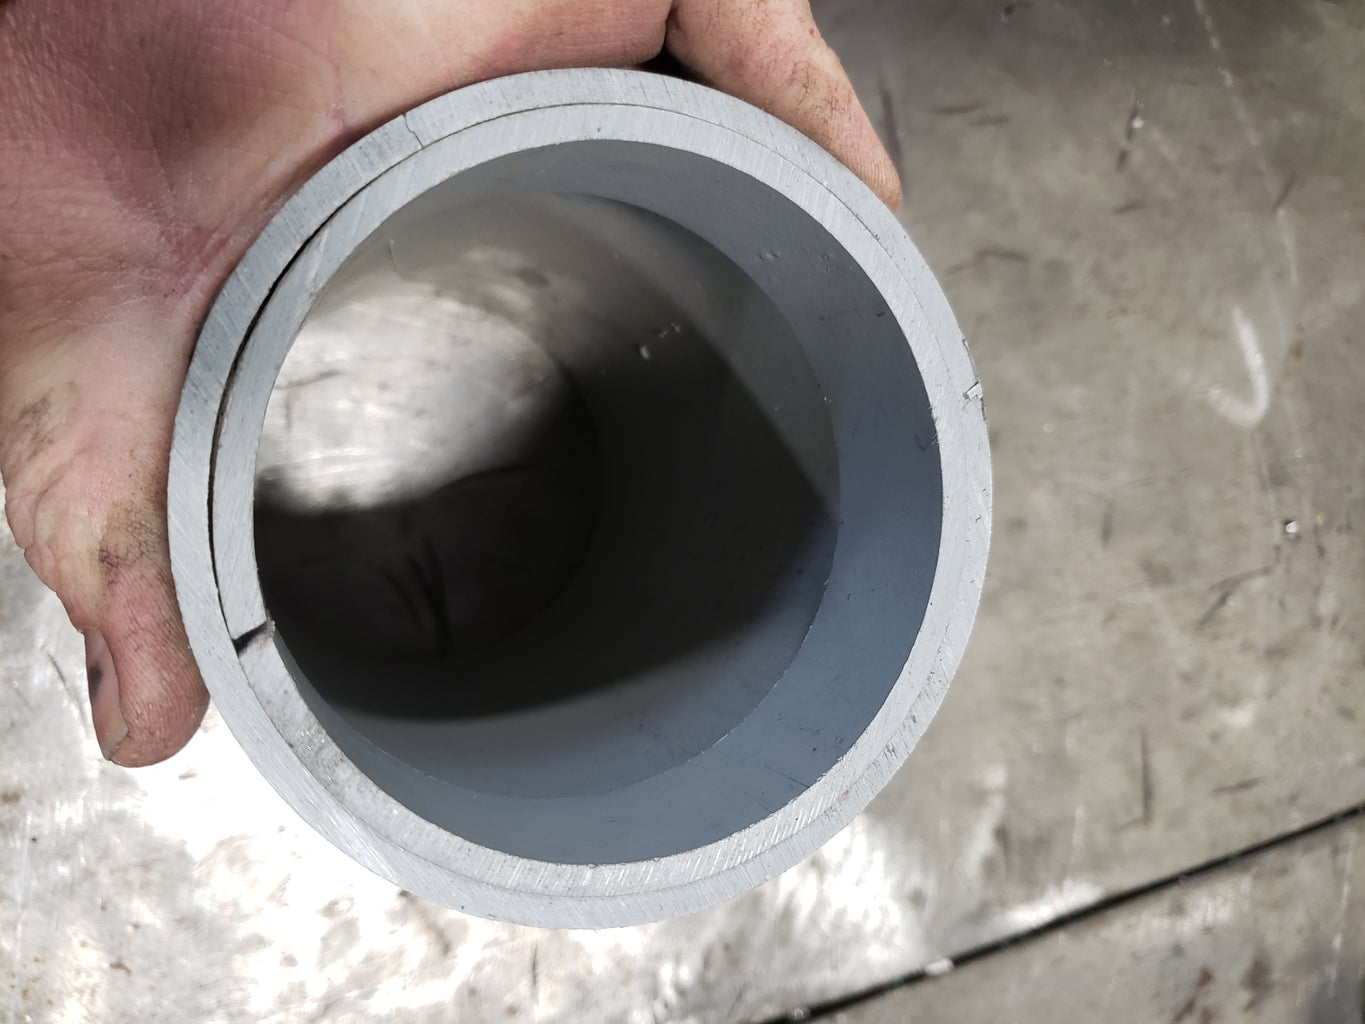 Step 2 - the Pipe